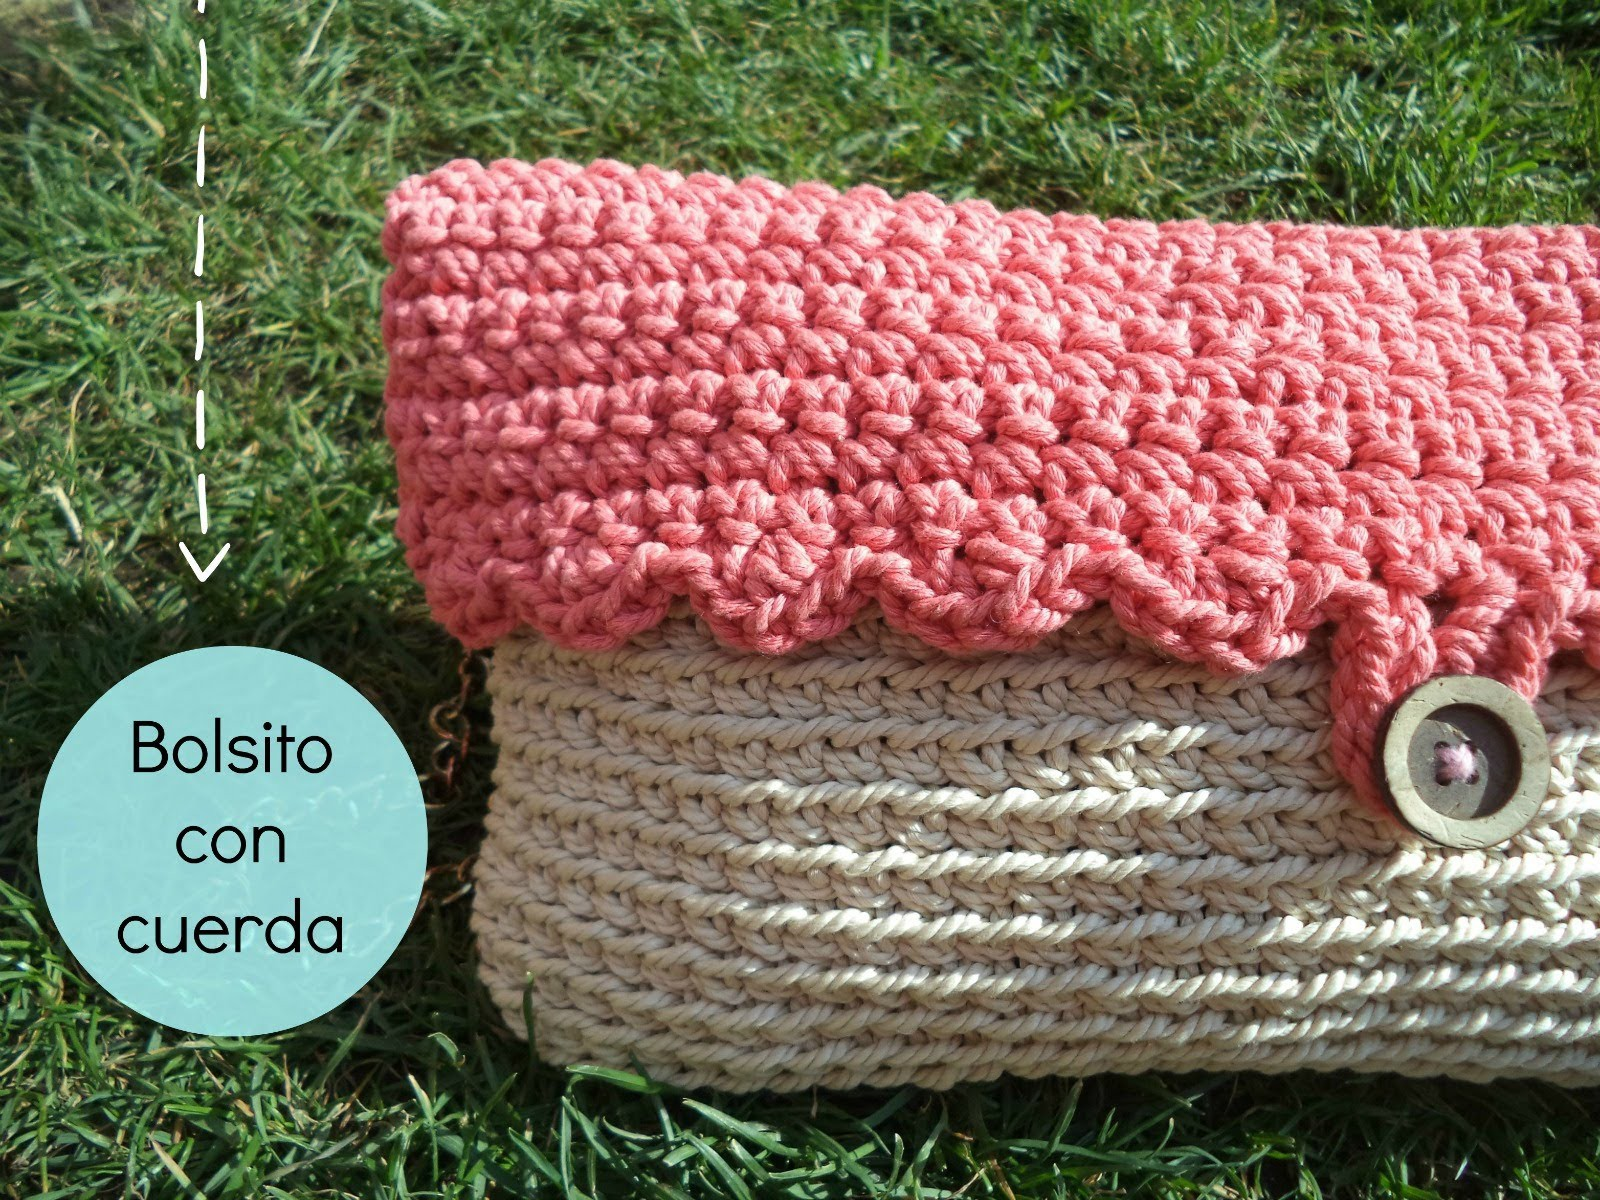 Cómo hacer un bolso de ganchillo con cuerda - How to make a crochet handbag